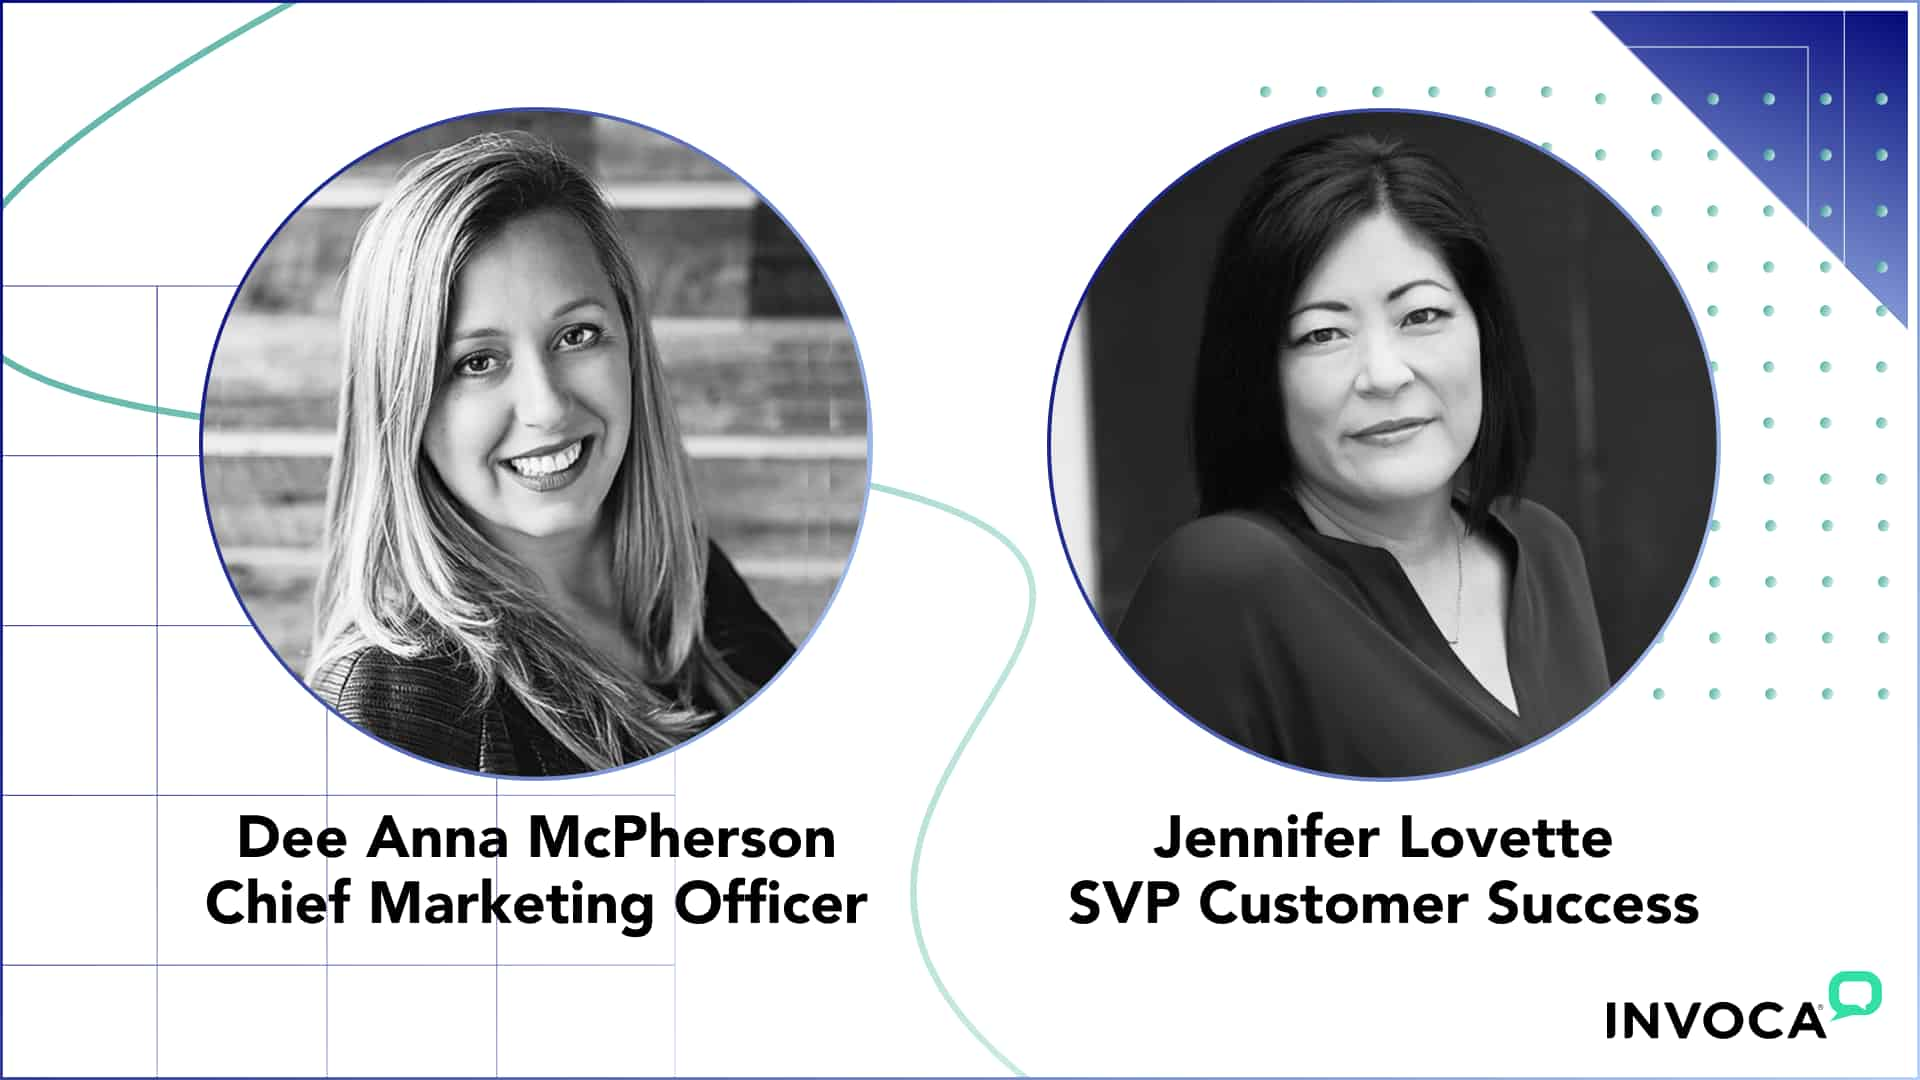 Invoca Welcomes New CMO and SVP of Customer Success